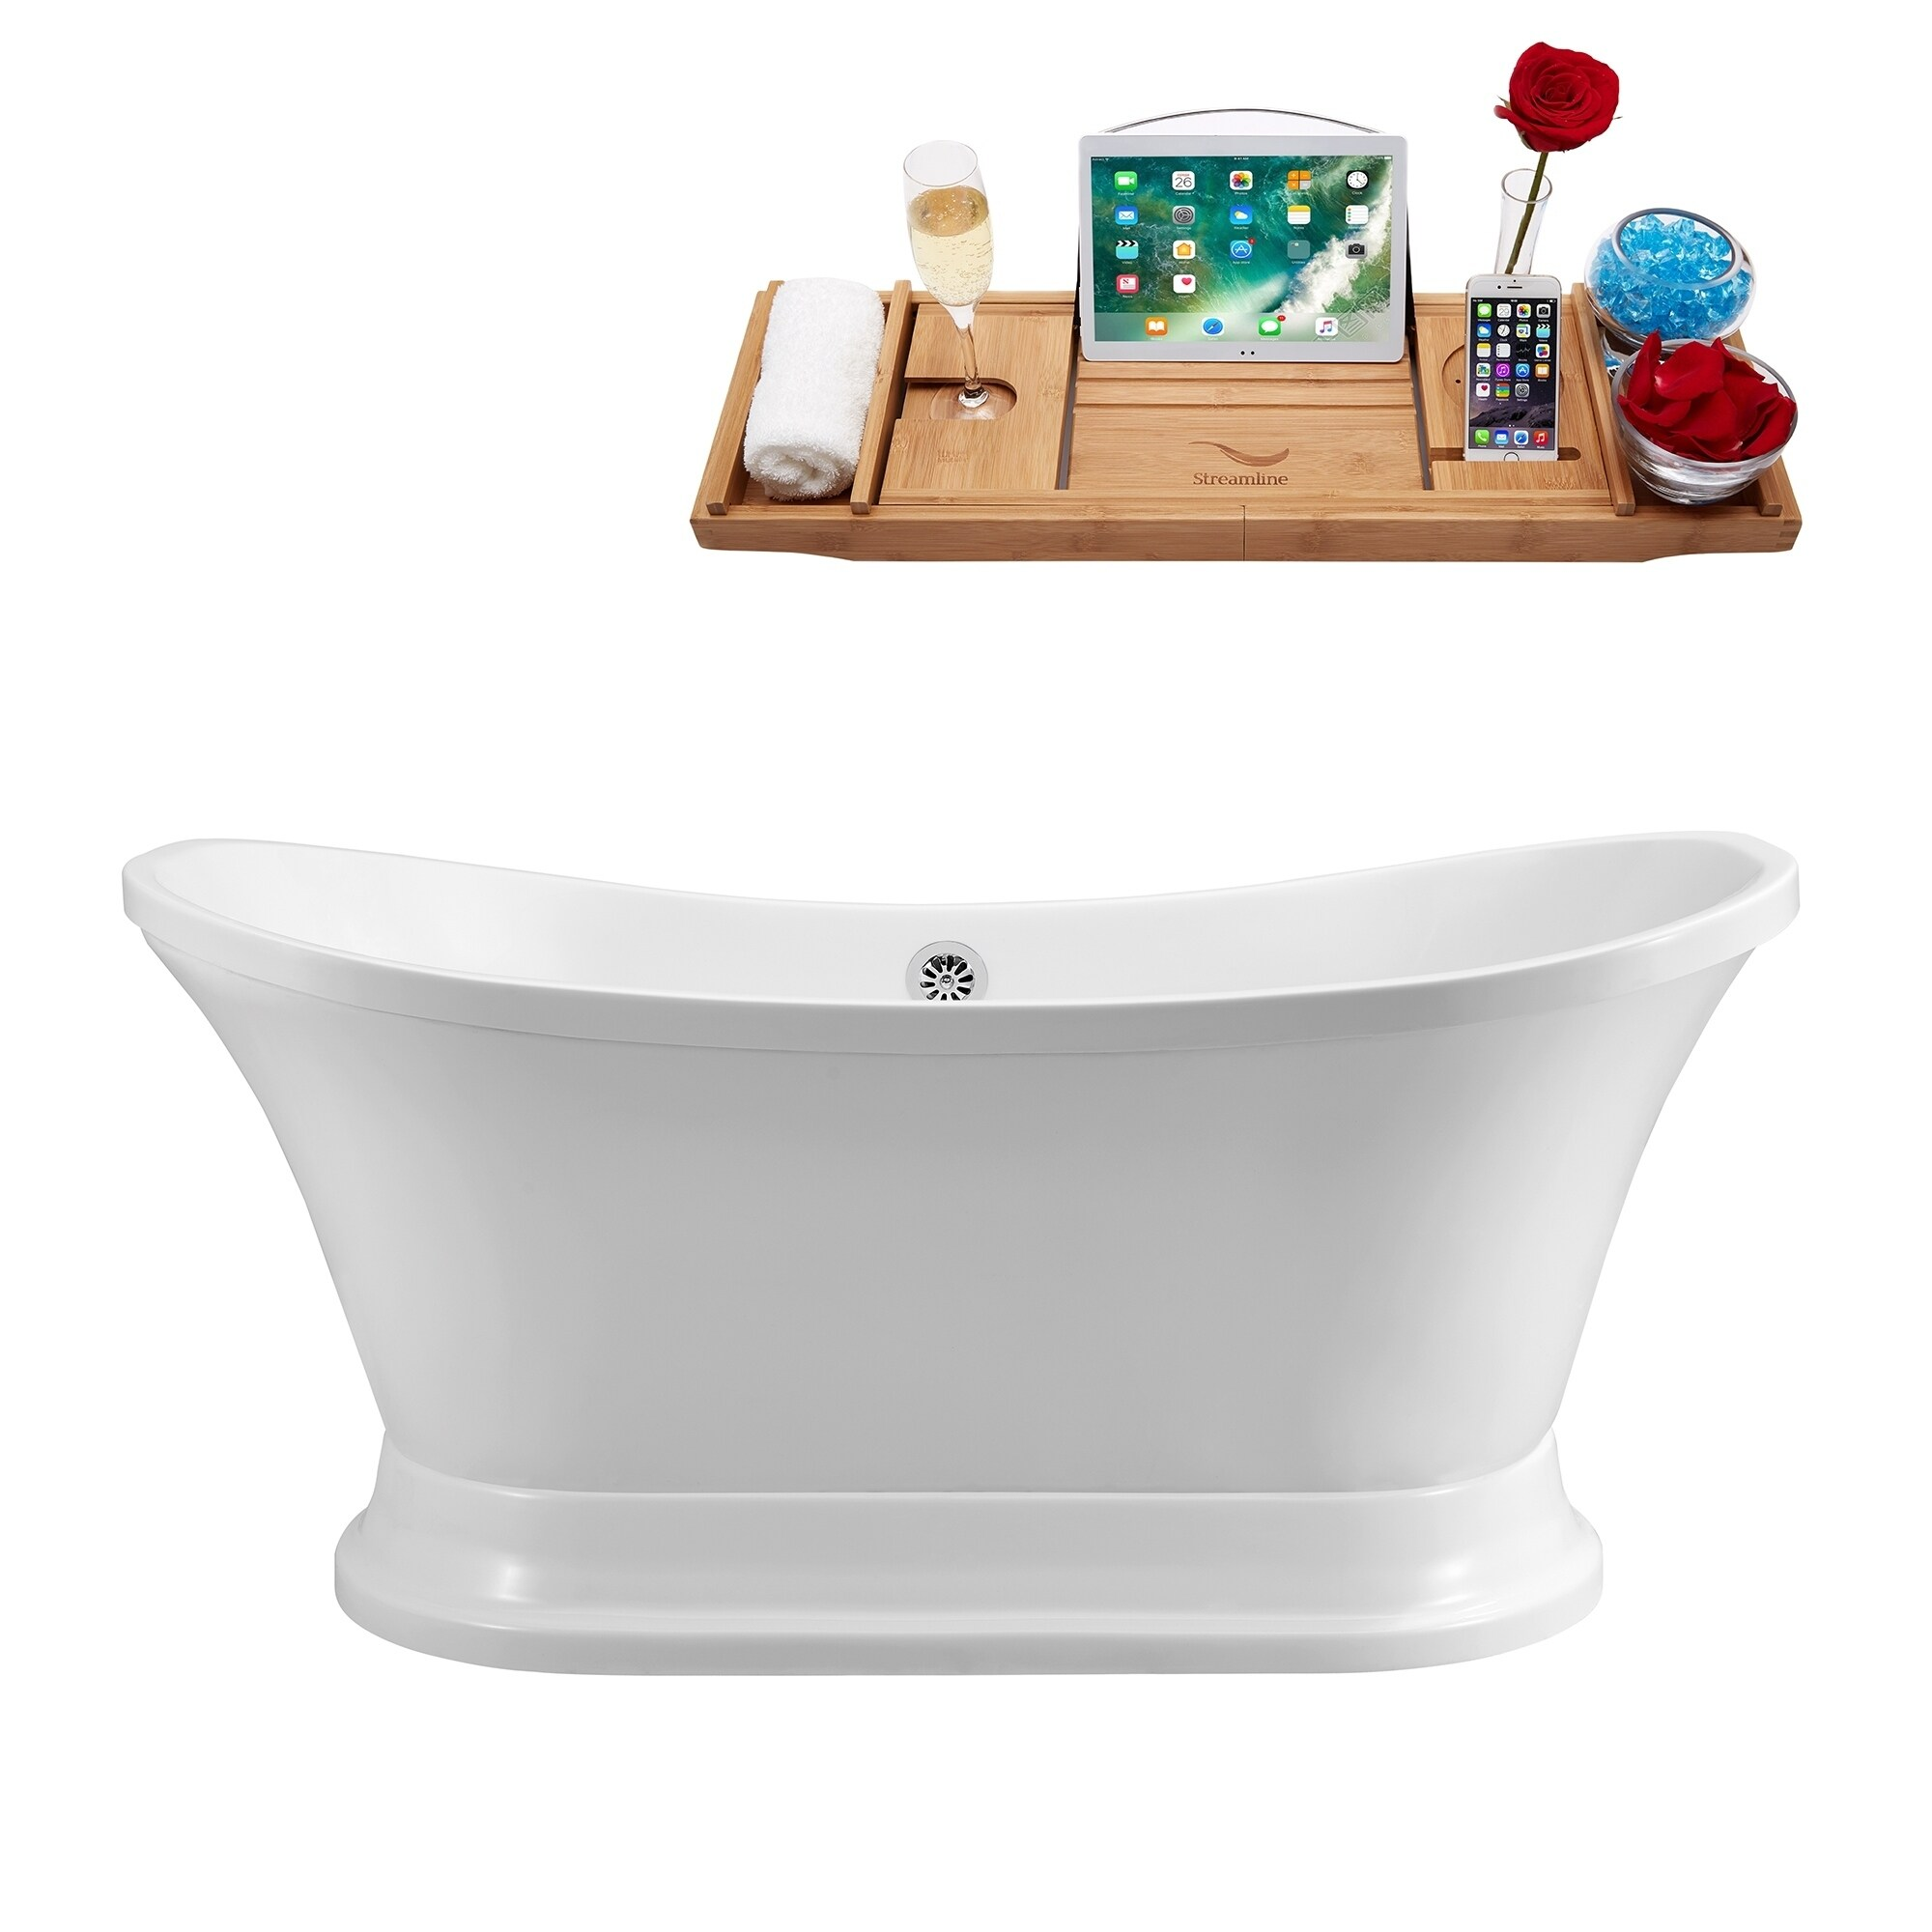 Streamline White 60-inch Free-standing Soaking Tub With External ...